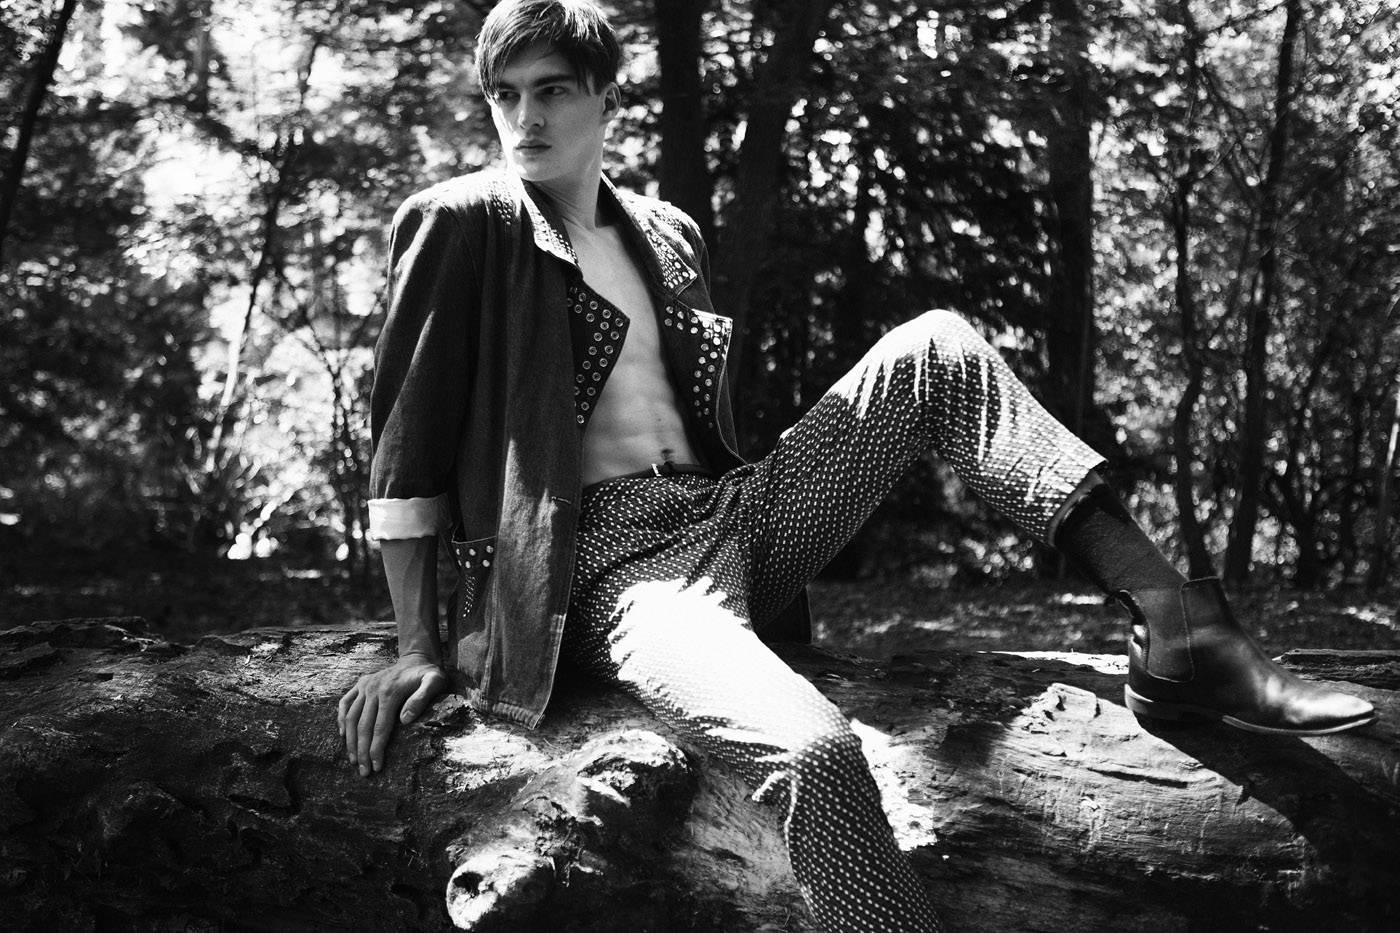 Thibault Gildas by Frederic Monceau for CHASSEUR MAGAZINE